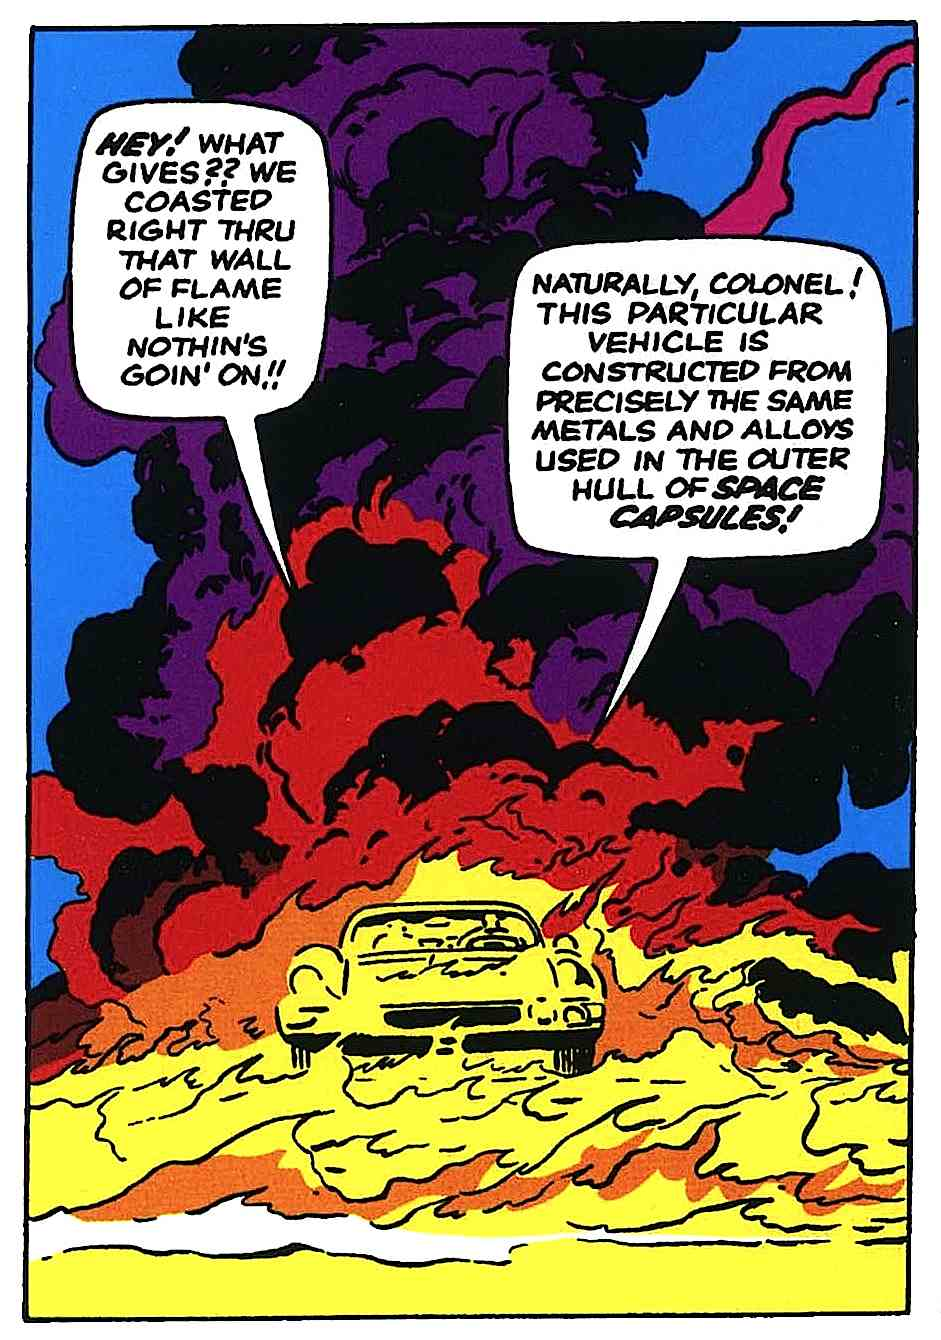 a Jack Kirby story panel for Nick Fury, two men calmly talking in a burning car